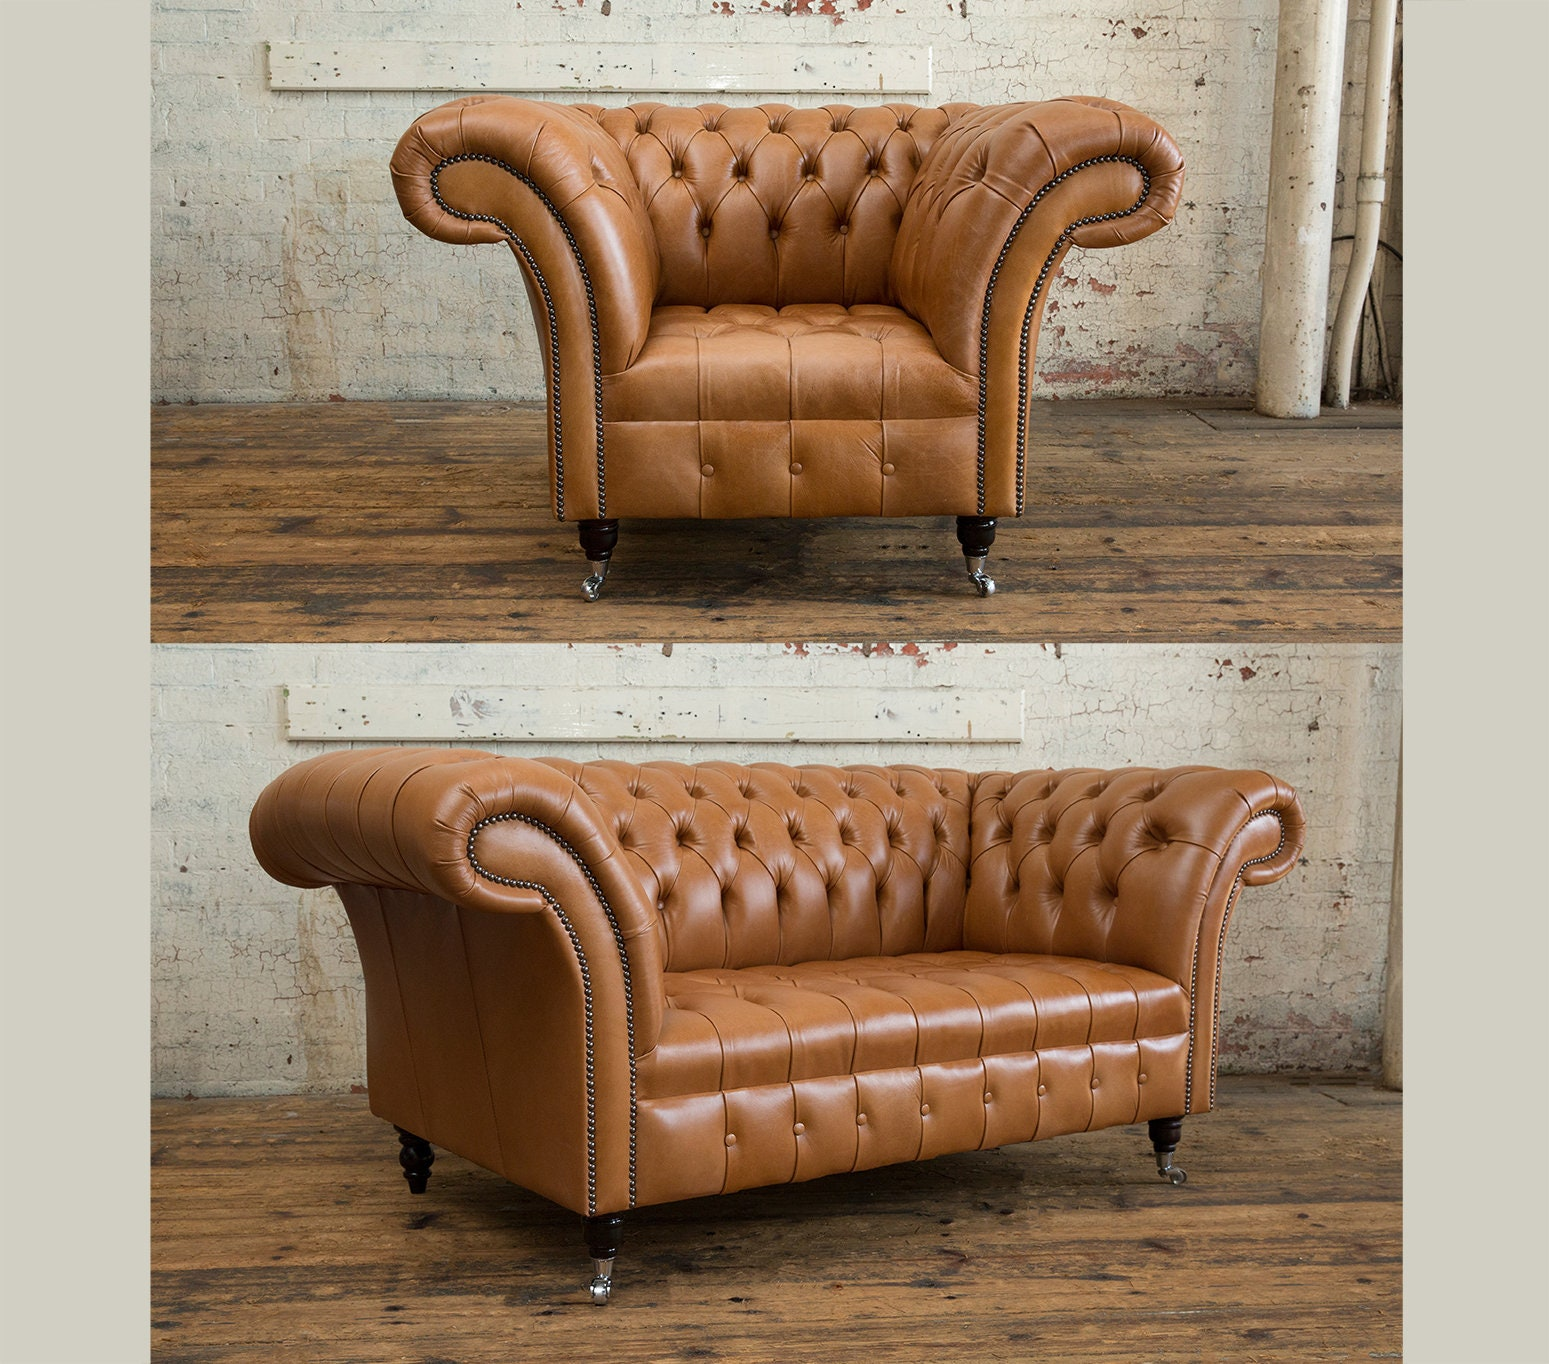 Handmade Distressed Vintage Tan Leather Chesterfield Single Armchair And 2 Seater Sofa